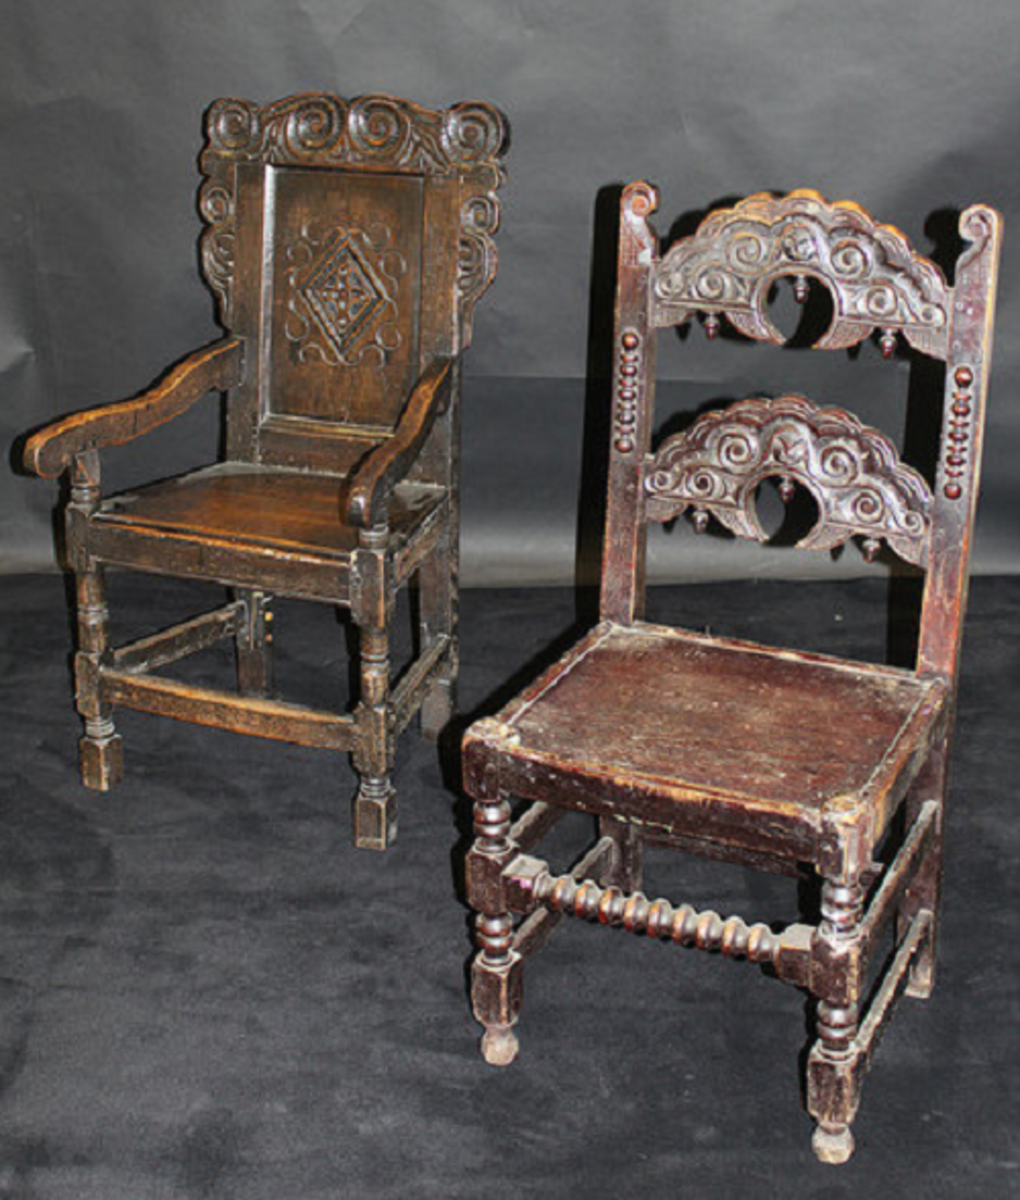 Early American Furniture in 17th Century Colonial Days